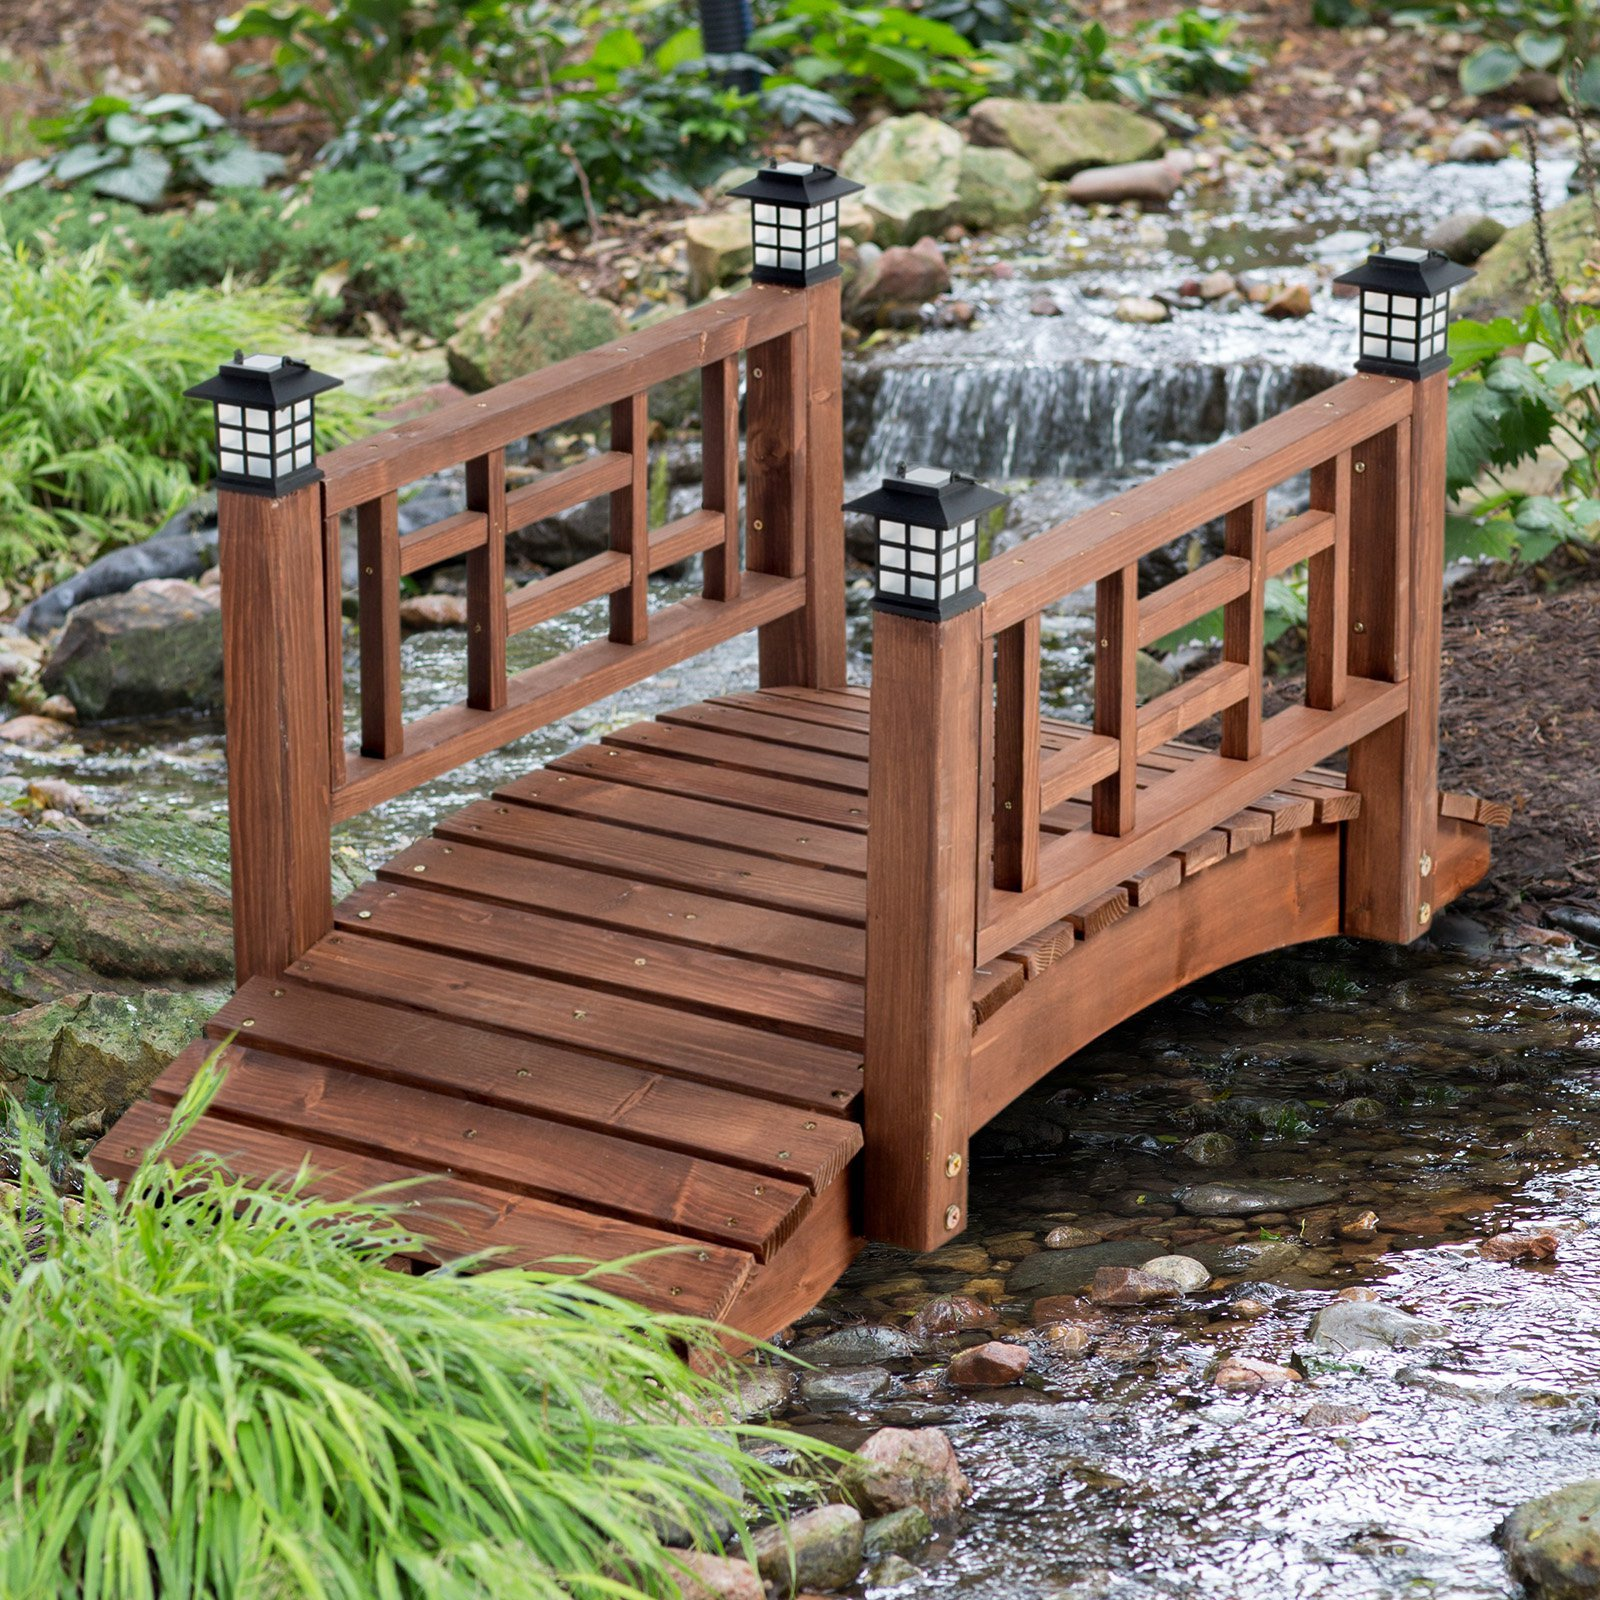 Brown Finish Wood 48'' Garden Bridge LED Lights Outdoor Yard Lawn Landscaping by Home Improvements